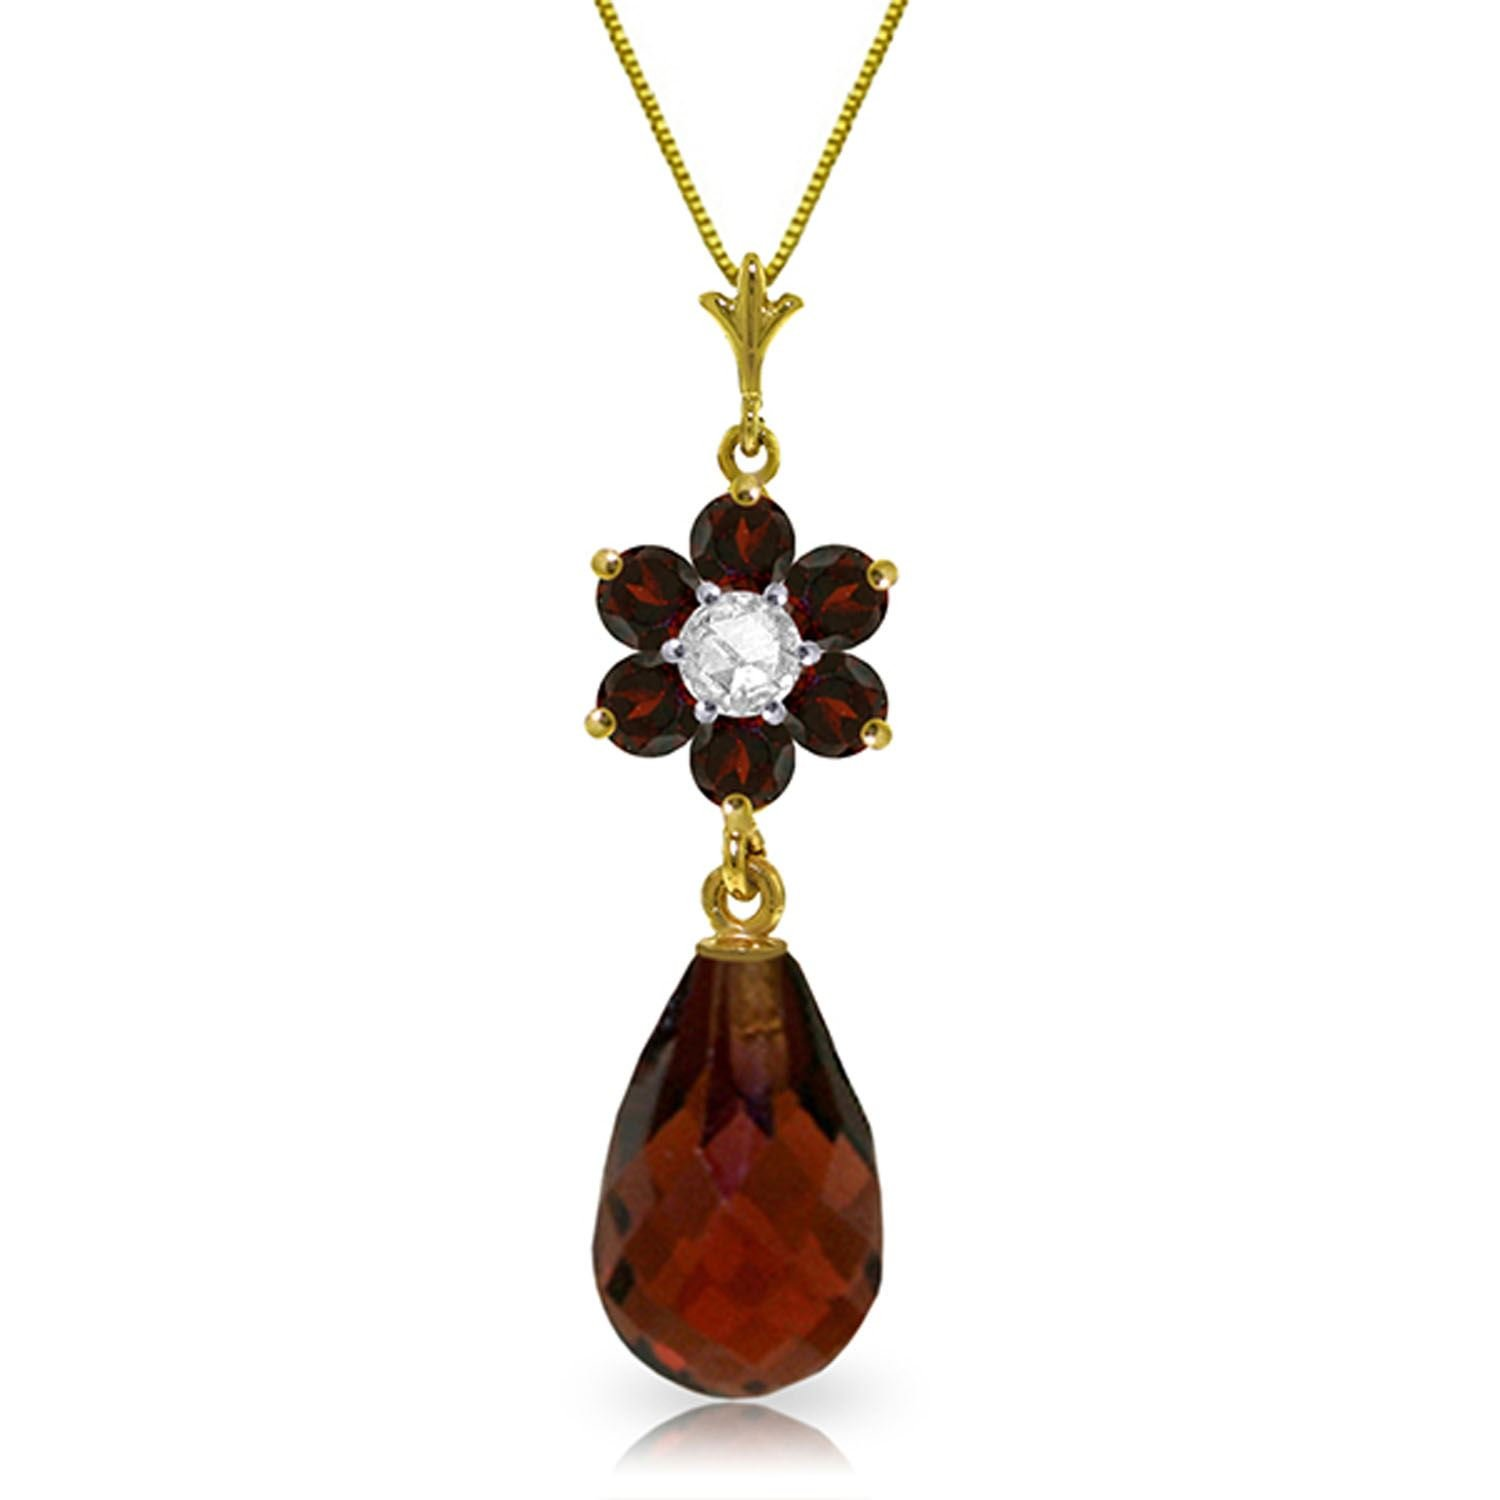 ALARRI 2.78 Carat 14K Solid Gold Tuft Of Flowers Garnet Diamond Necklace with 18 Inch Chain Length